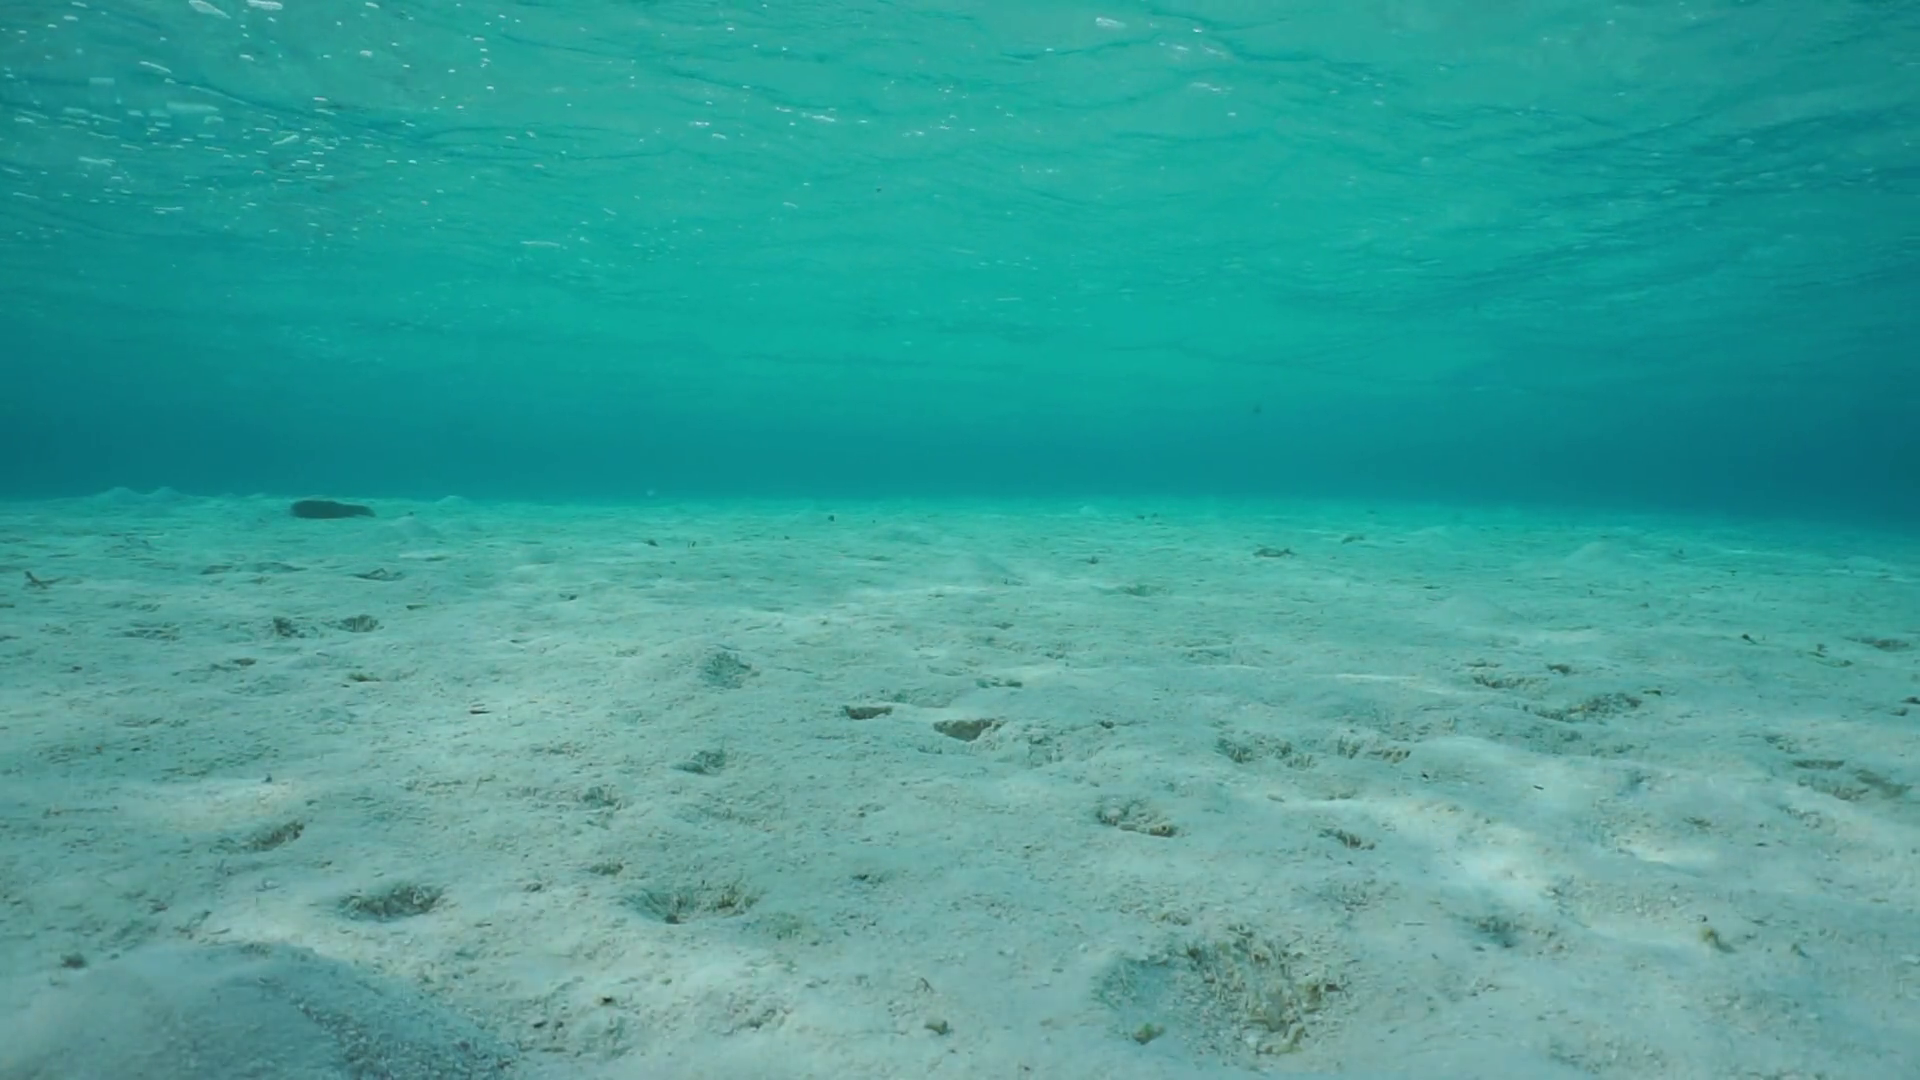 Sand underwater on a shallow ocean floor with ripples of water surface in  the lagoon of Bora Bora, natural scene, Pacific ocean, French Polynesia.